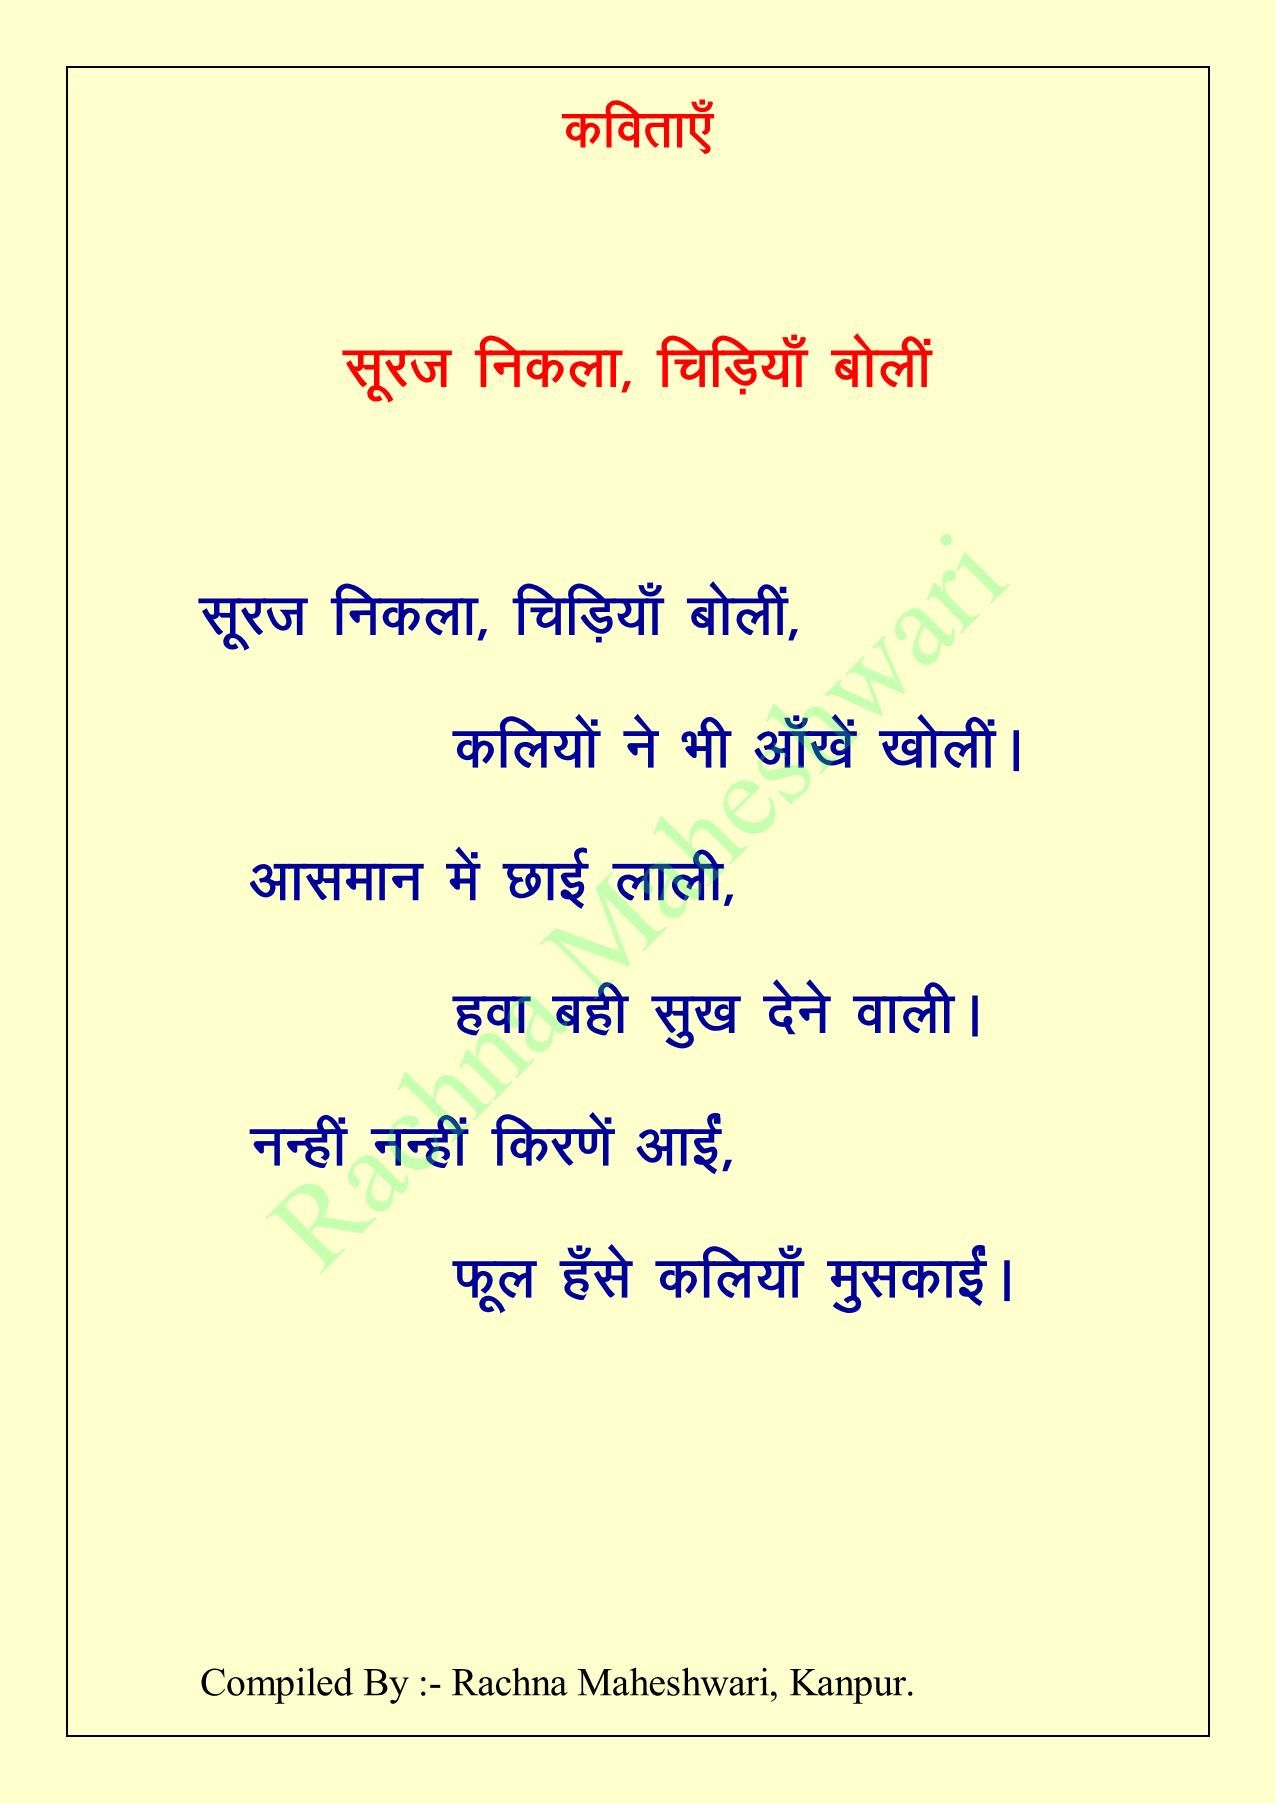 Pin by Priti Singh on Hindi for kids (With images